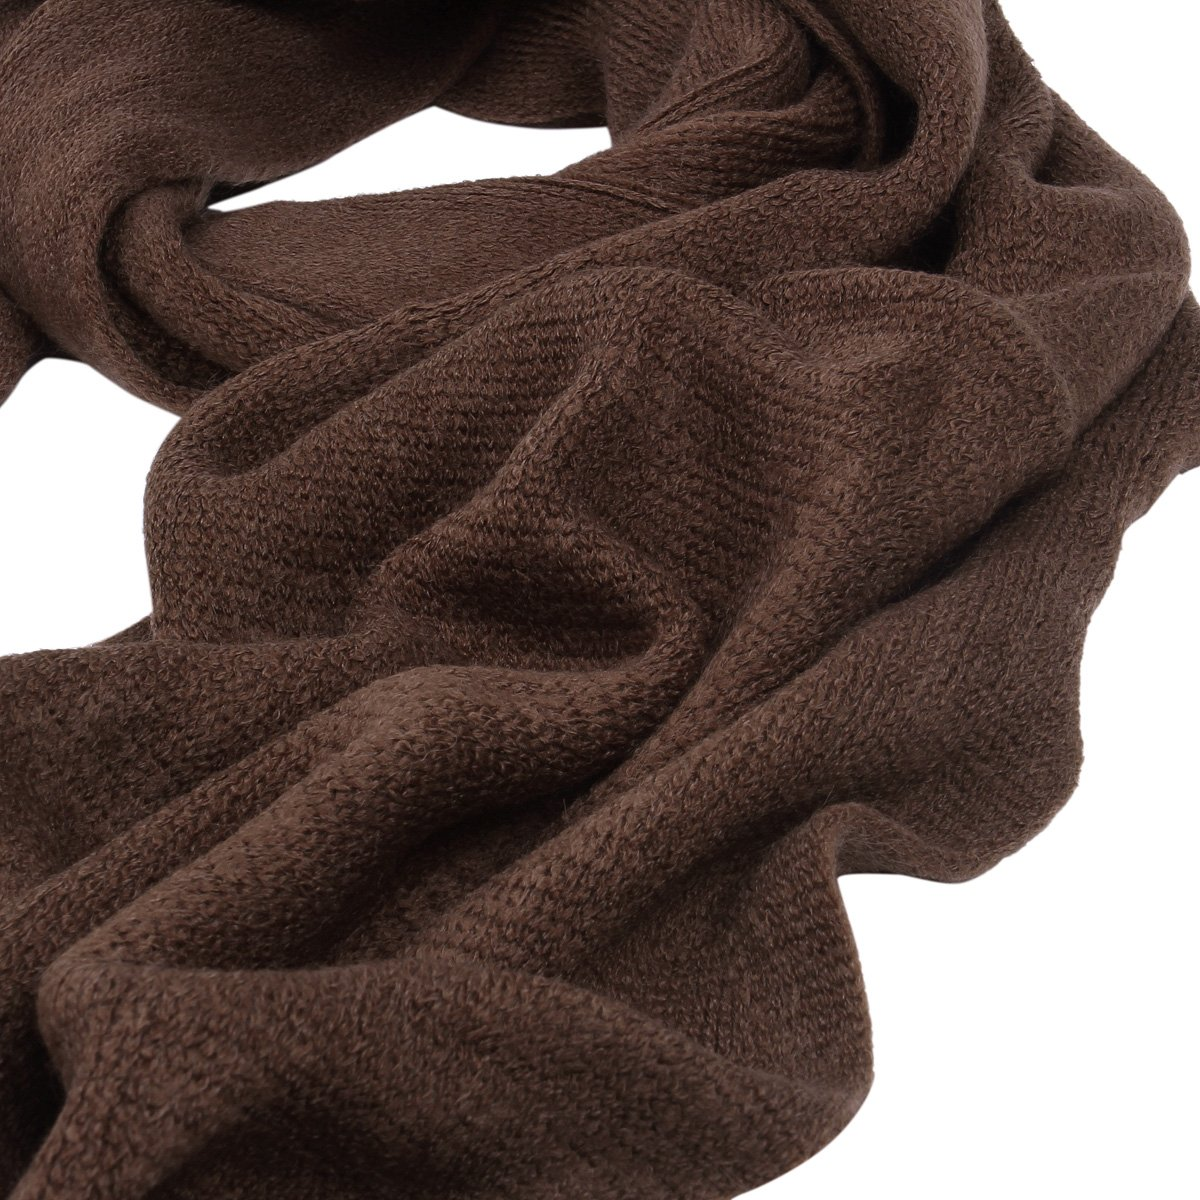 TrendsBlue Classic Soft Unisex Solid Color Warm Winter Scarf Diff Colors